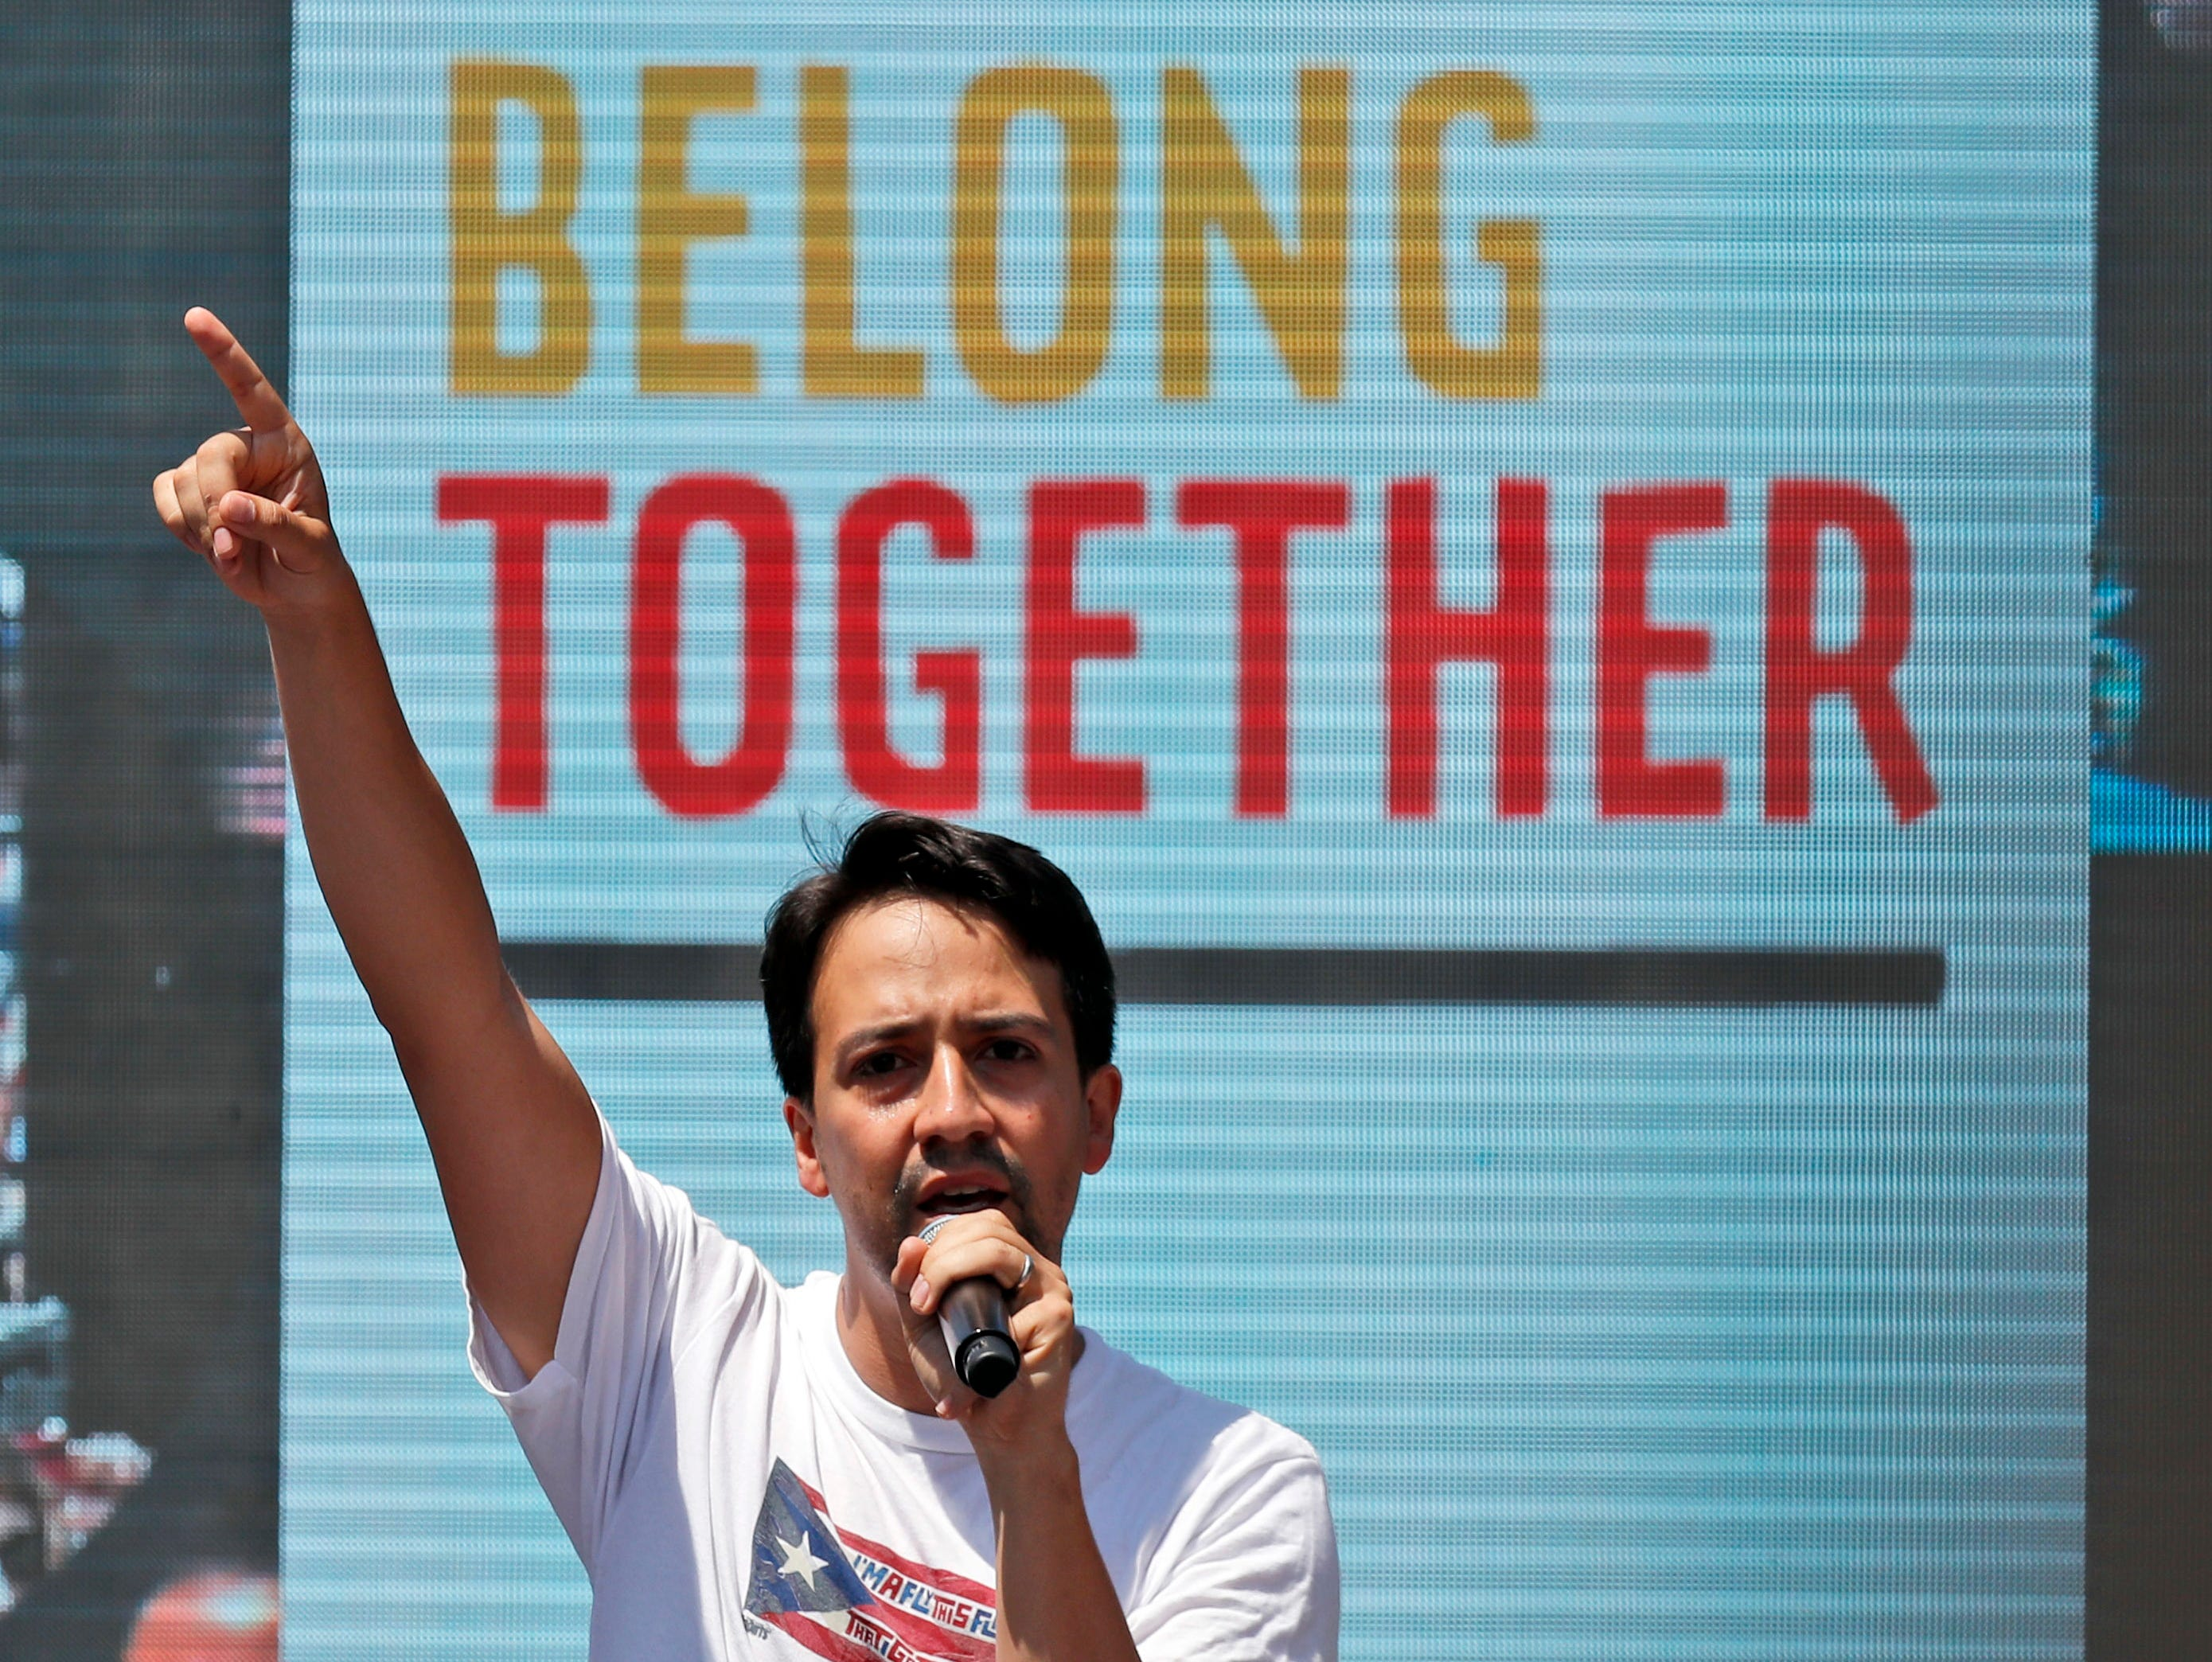 June 30: Lin-Manuel Miranda speaks during a protest of the Trump administration's approach to illegal border crossings and separation of children from immigrant parents across from the White House.